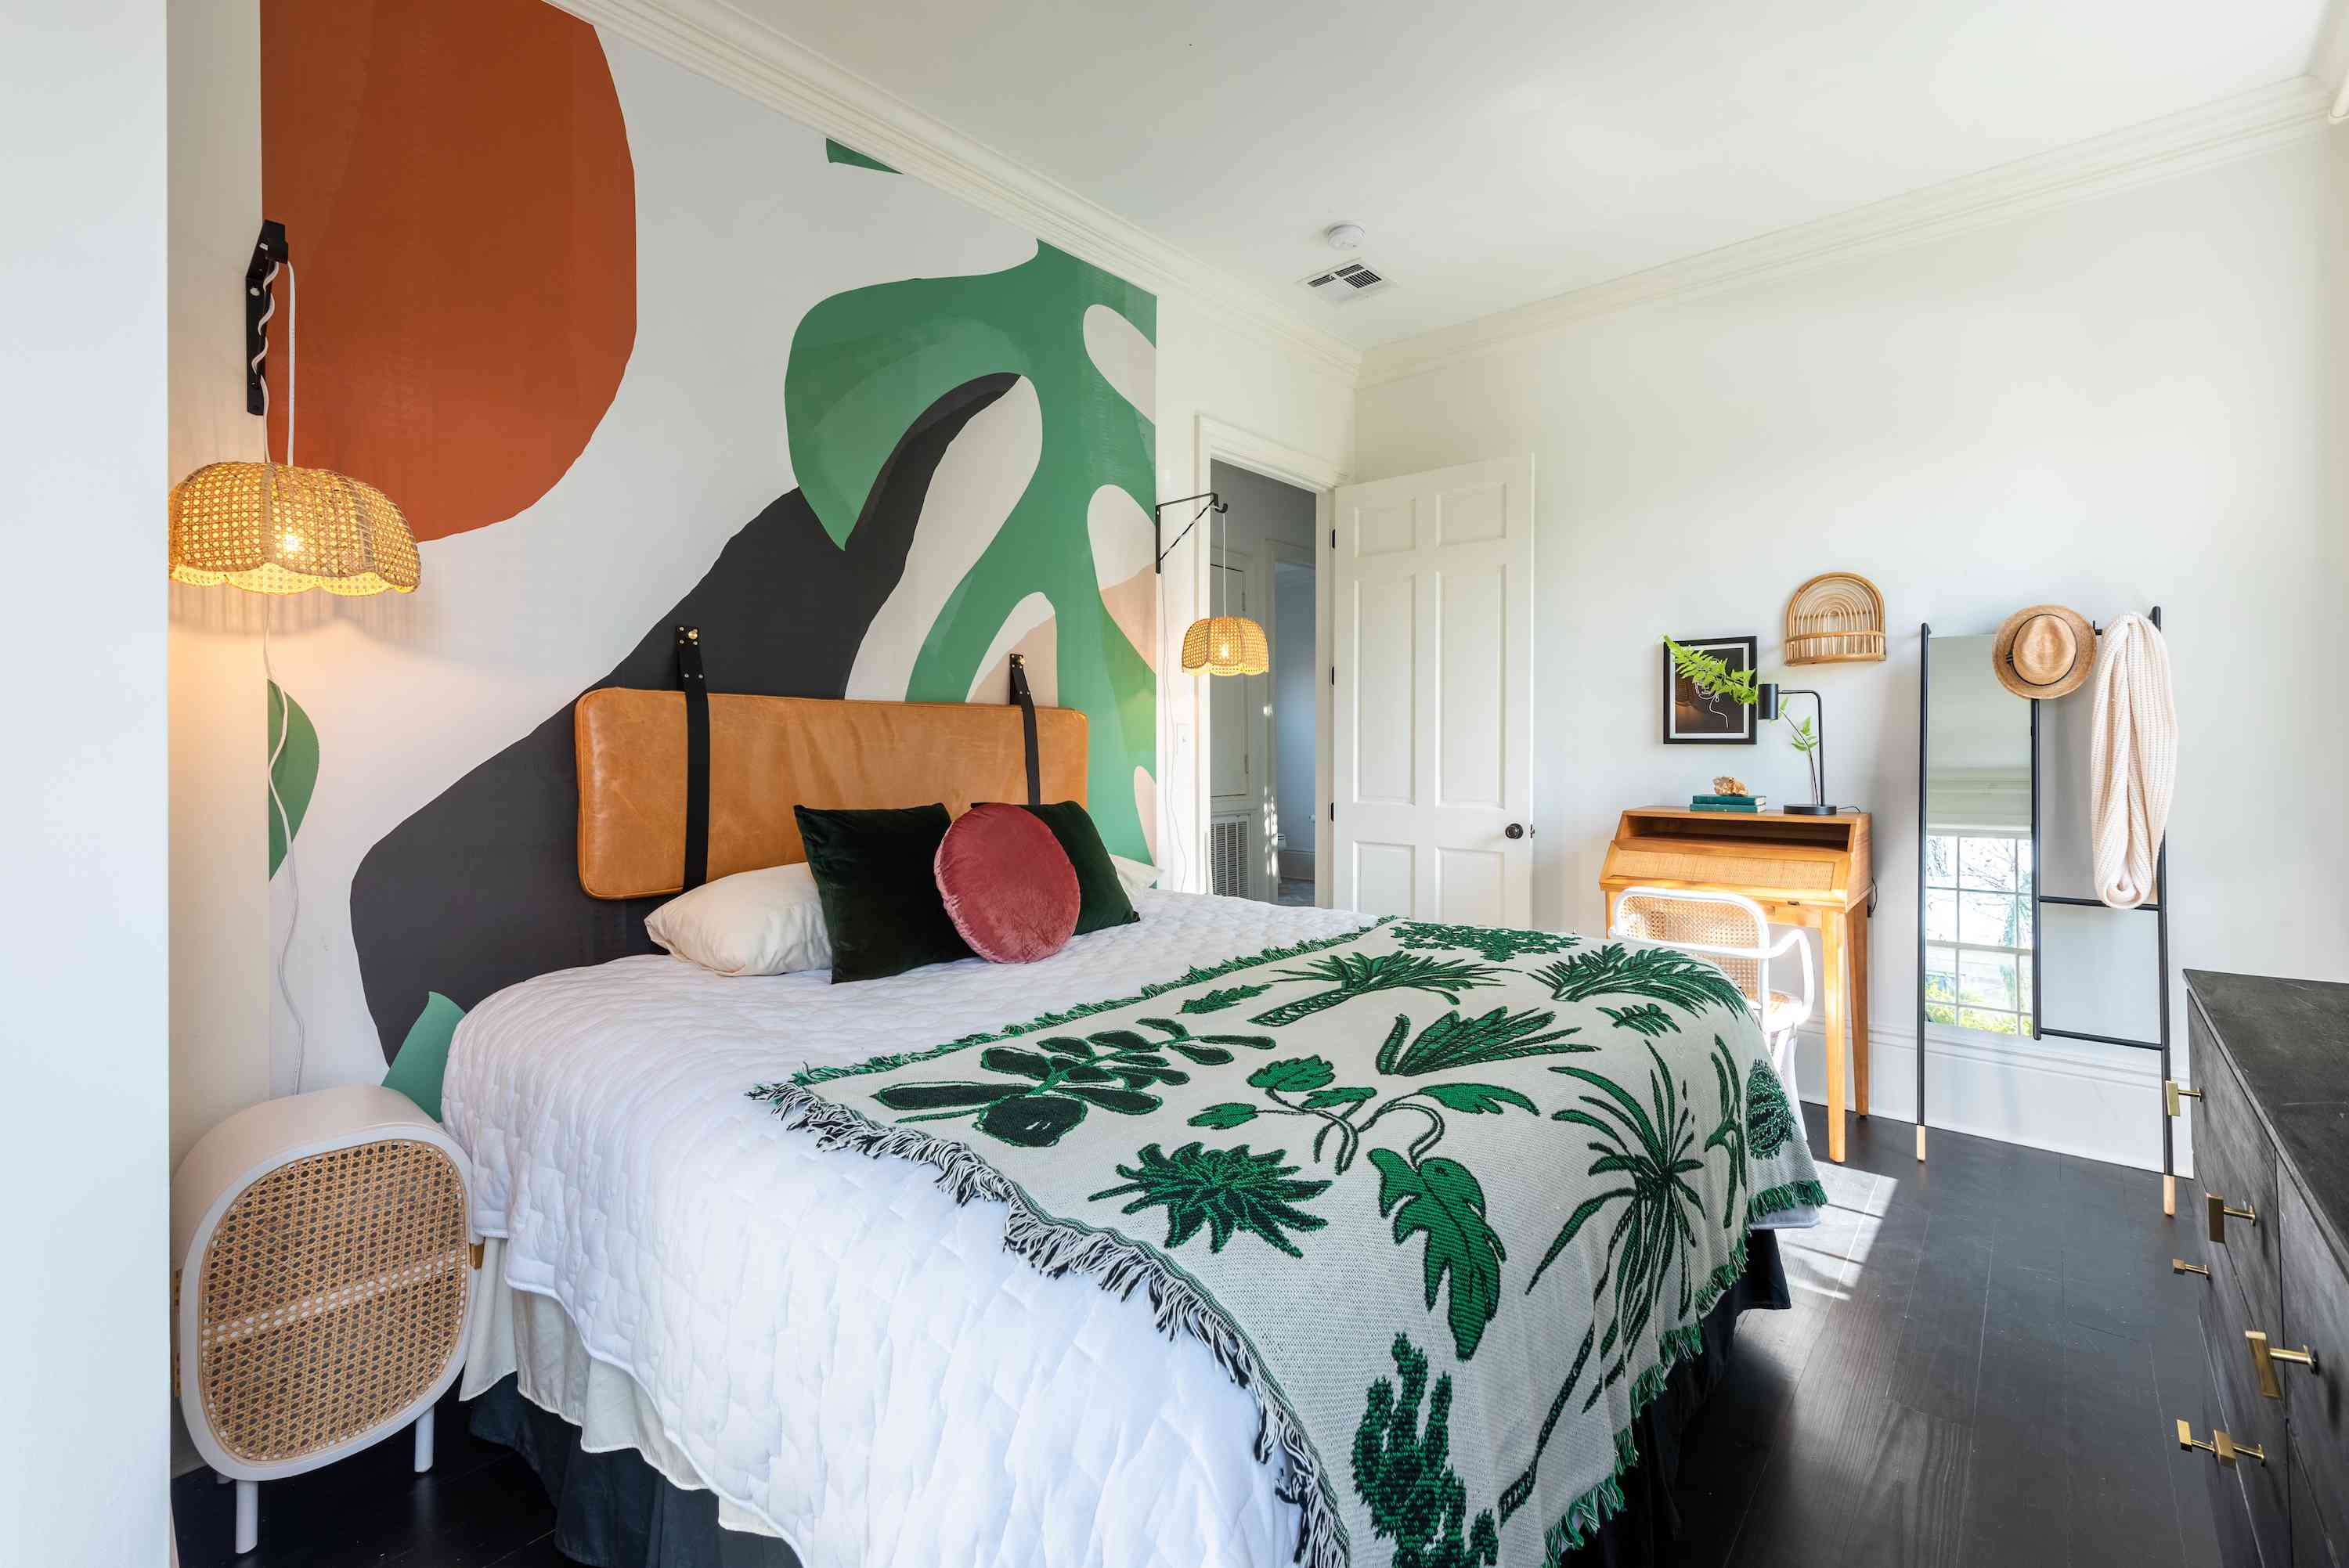 Bedroom with tropical inspired blanket and bold graphic mural.